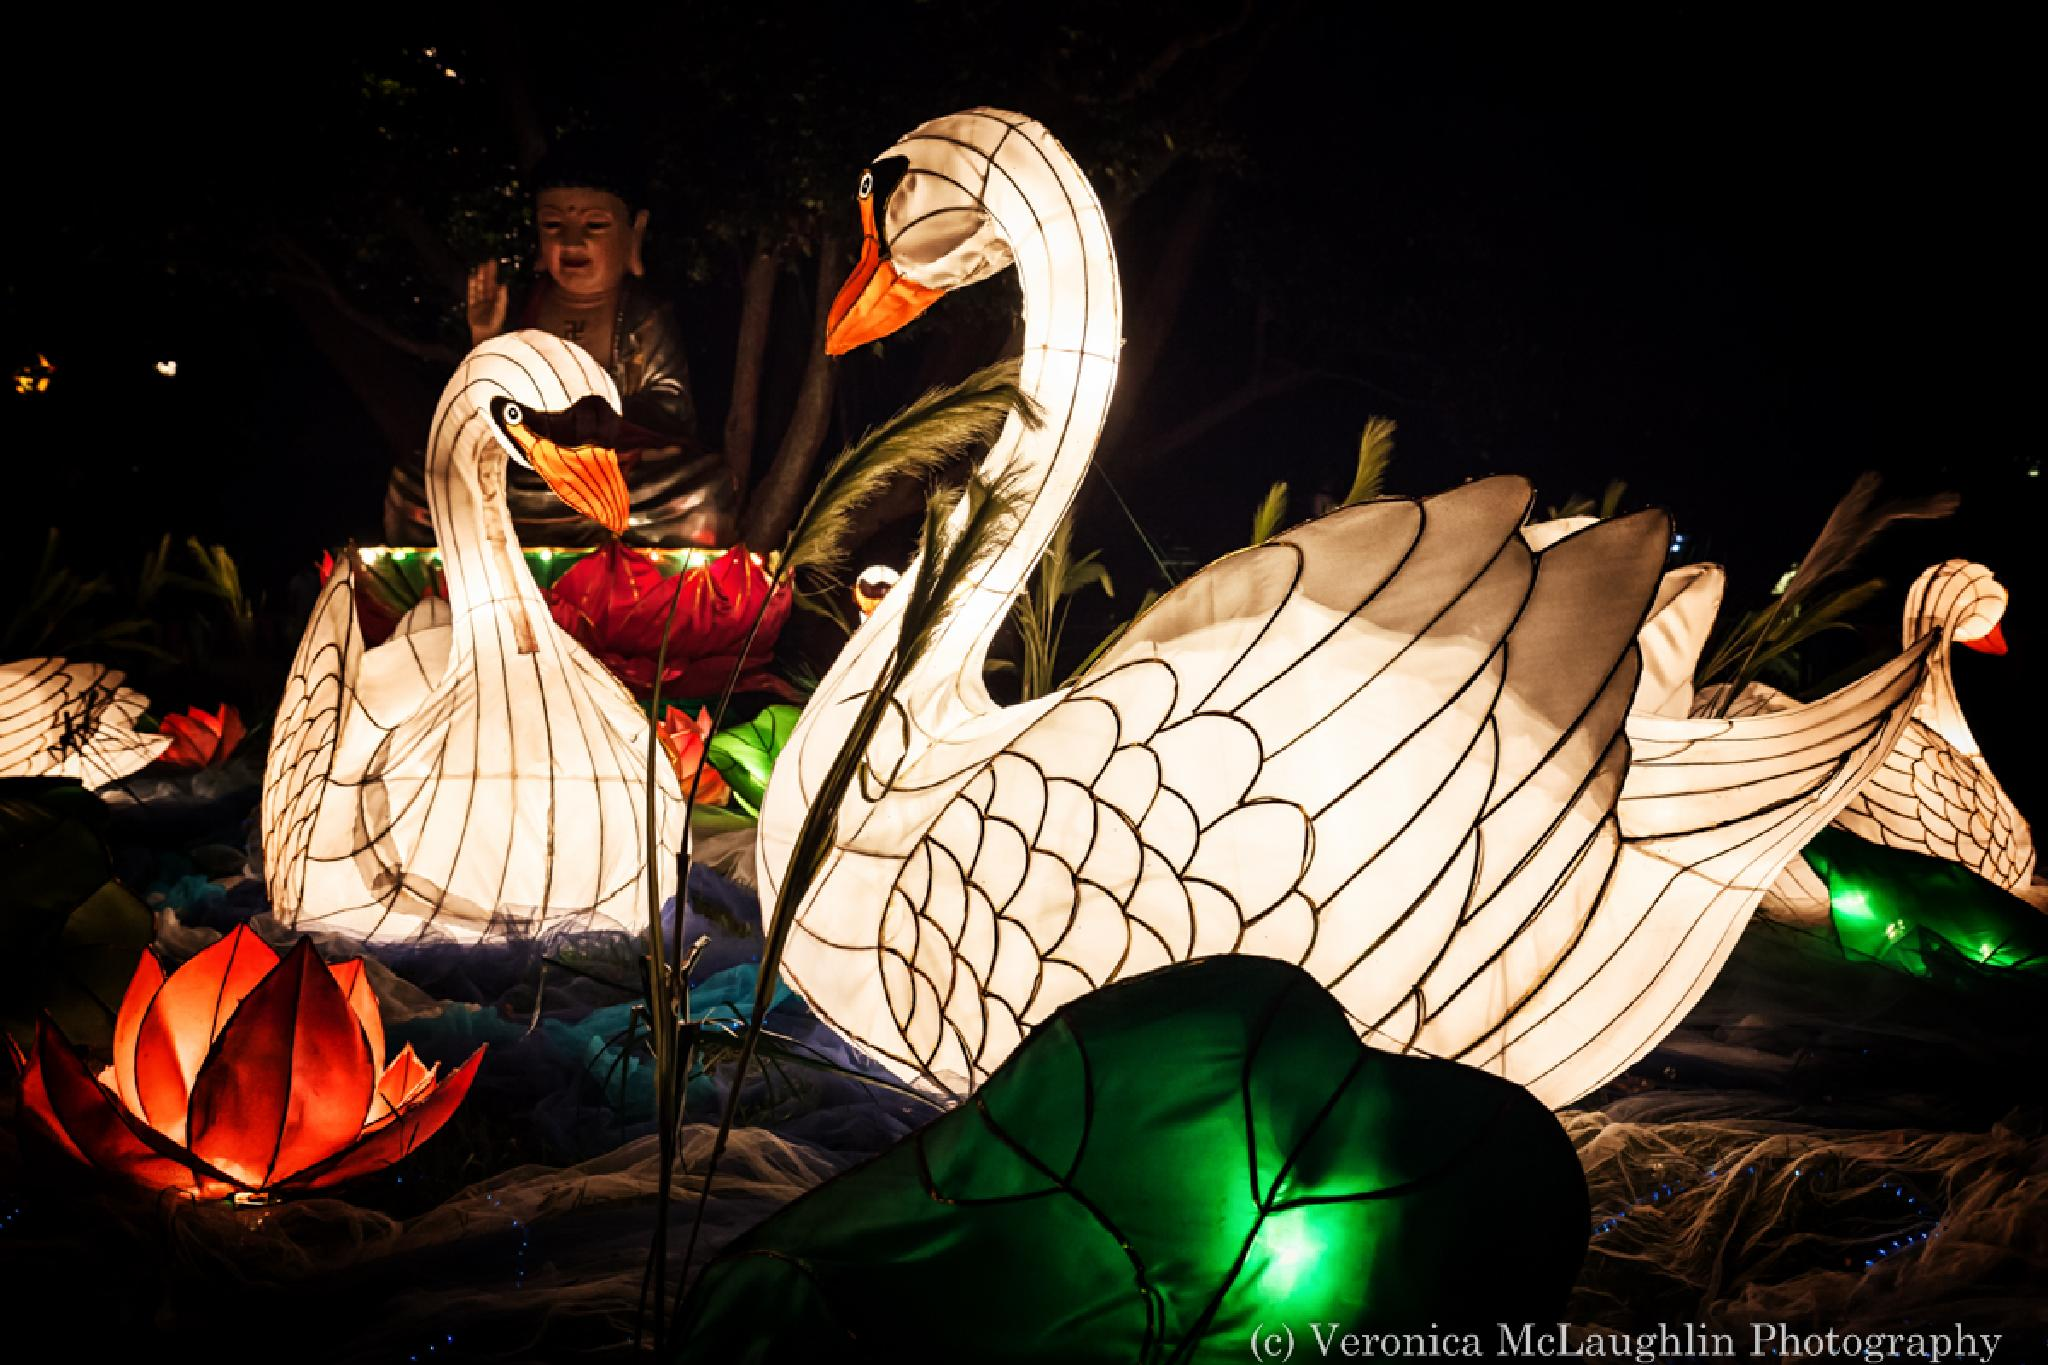 Swans in Light by Veronica McLaughlin